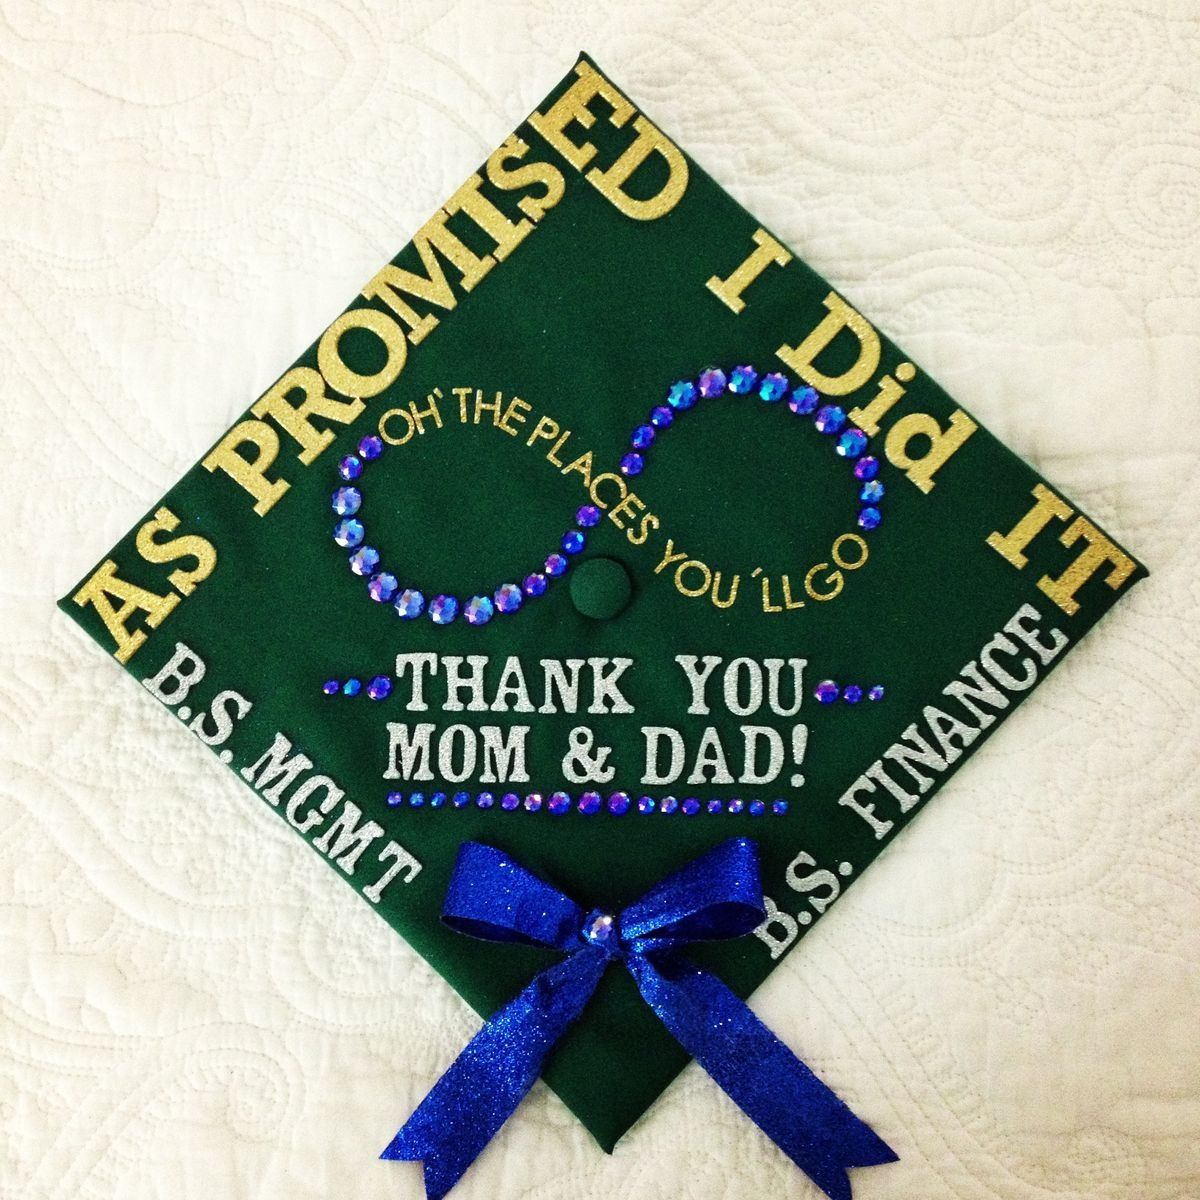 Thank you mom and dad grad cap ideas She turned her Dreams into ...